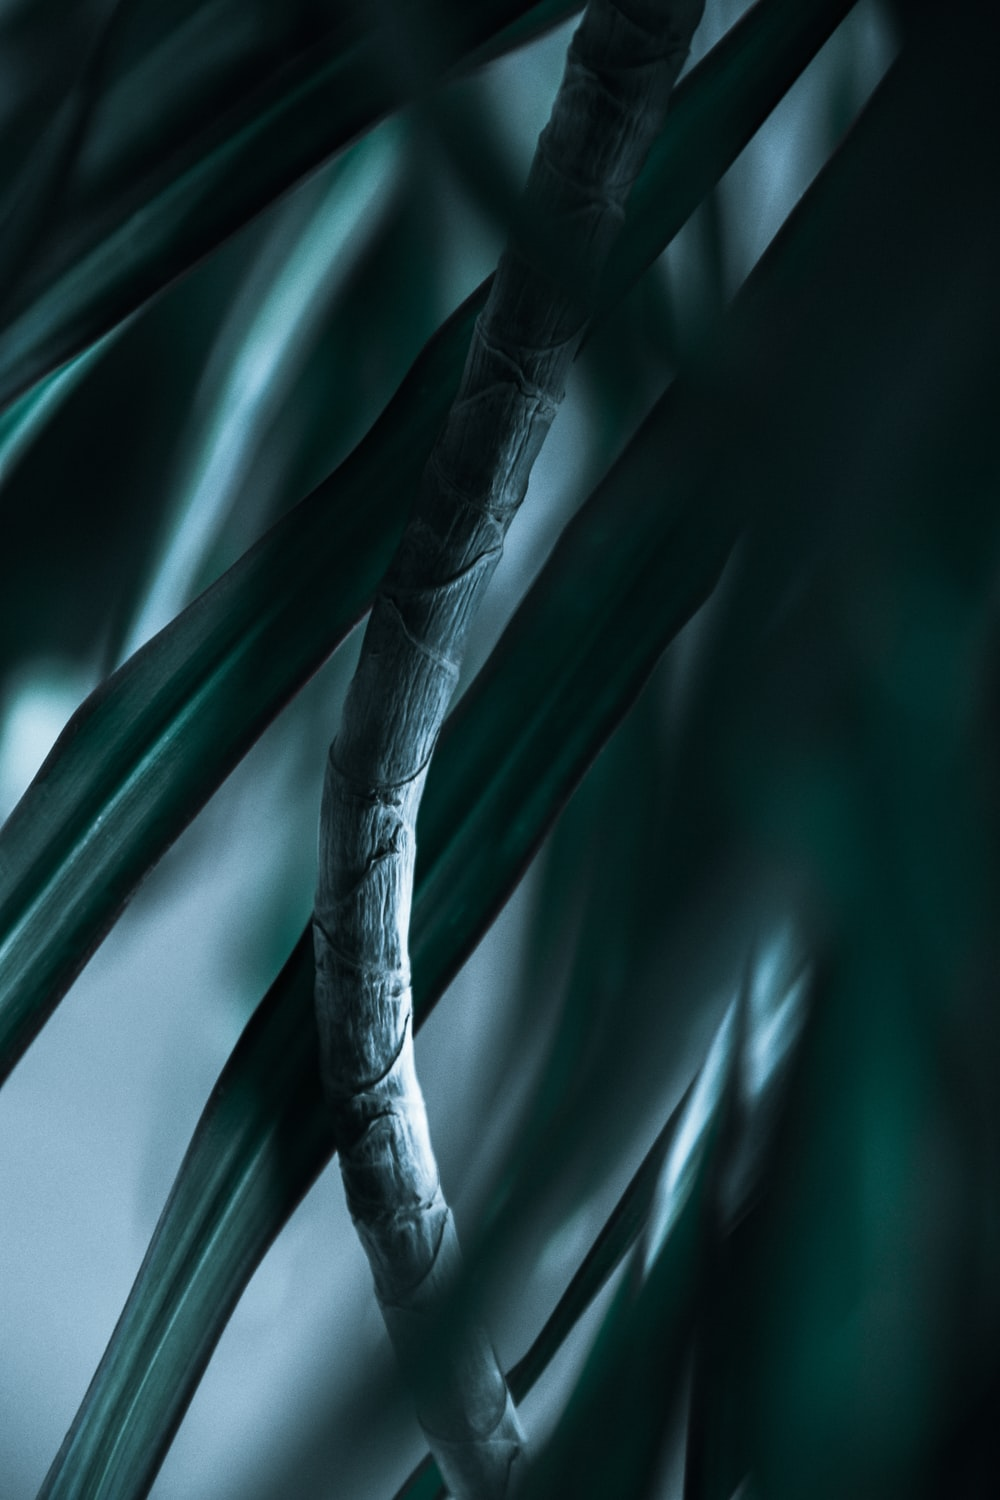 green linear-leafed plant on focus photography